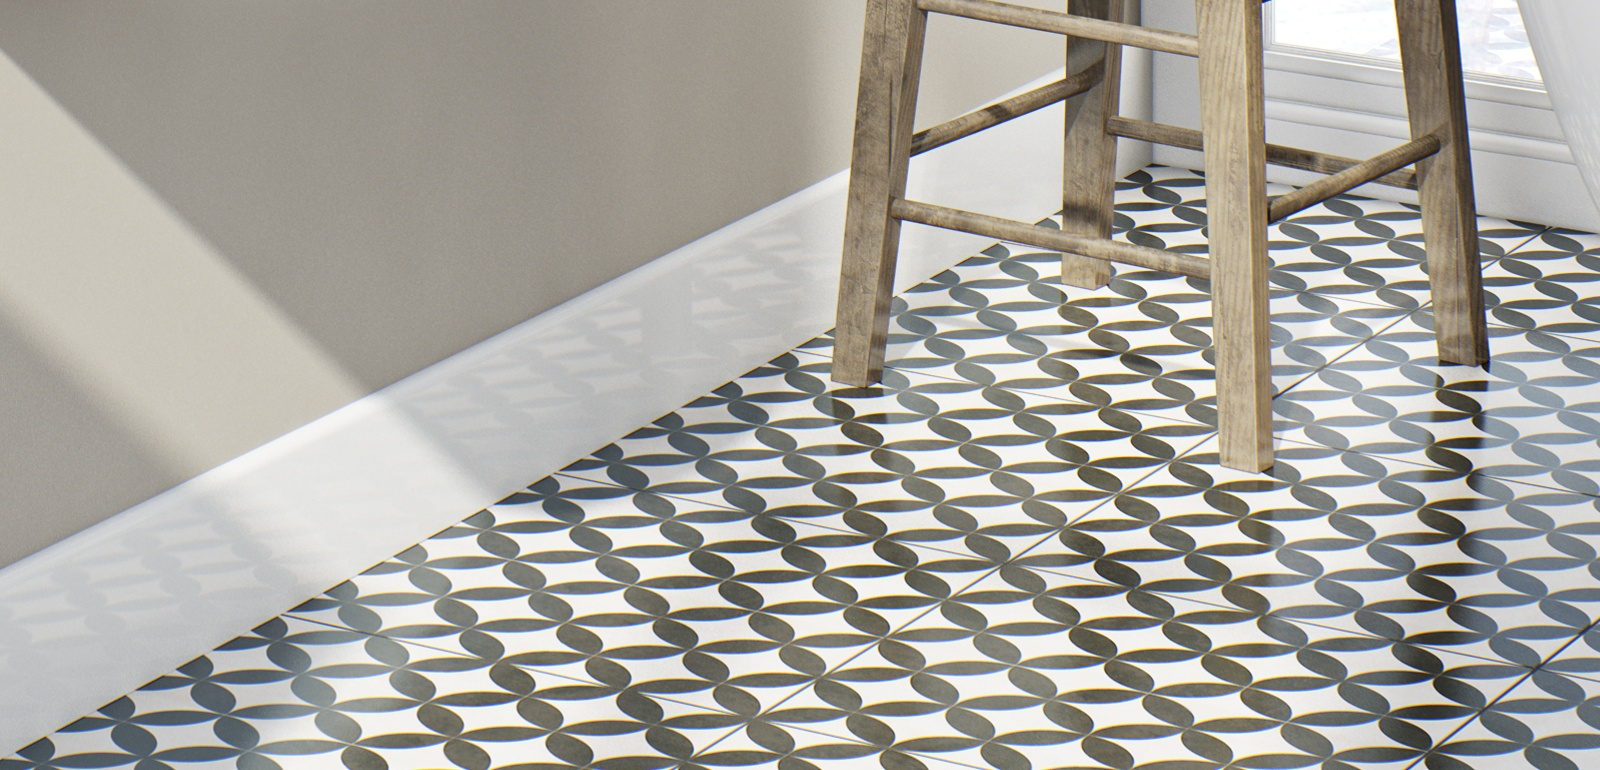 5 Best Bathroom Flooring Materials To Consider